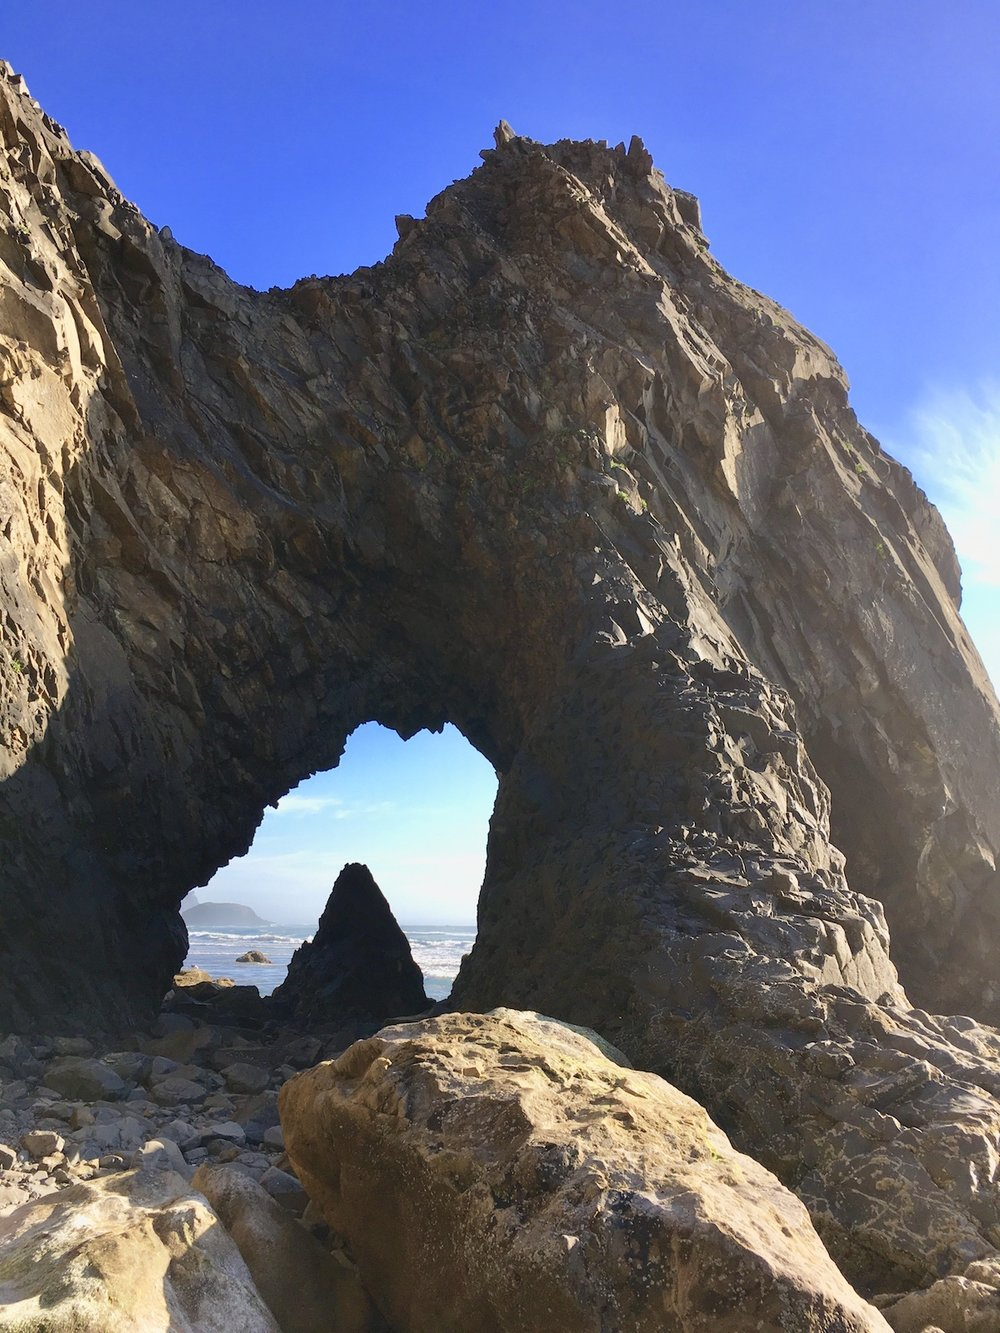 The Arch Cape arch sits just past the Arch Cape headland at the south of town